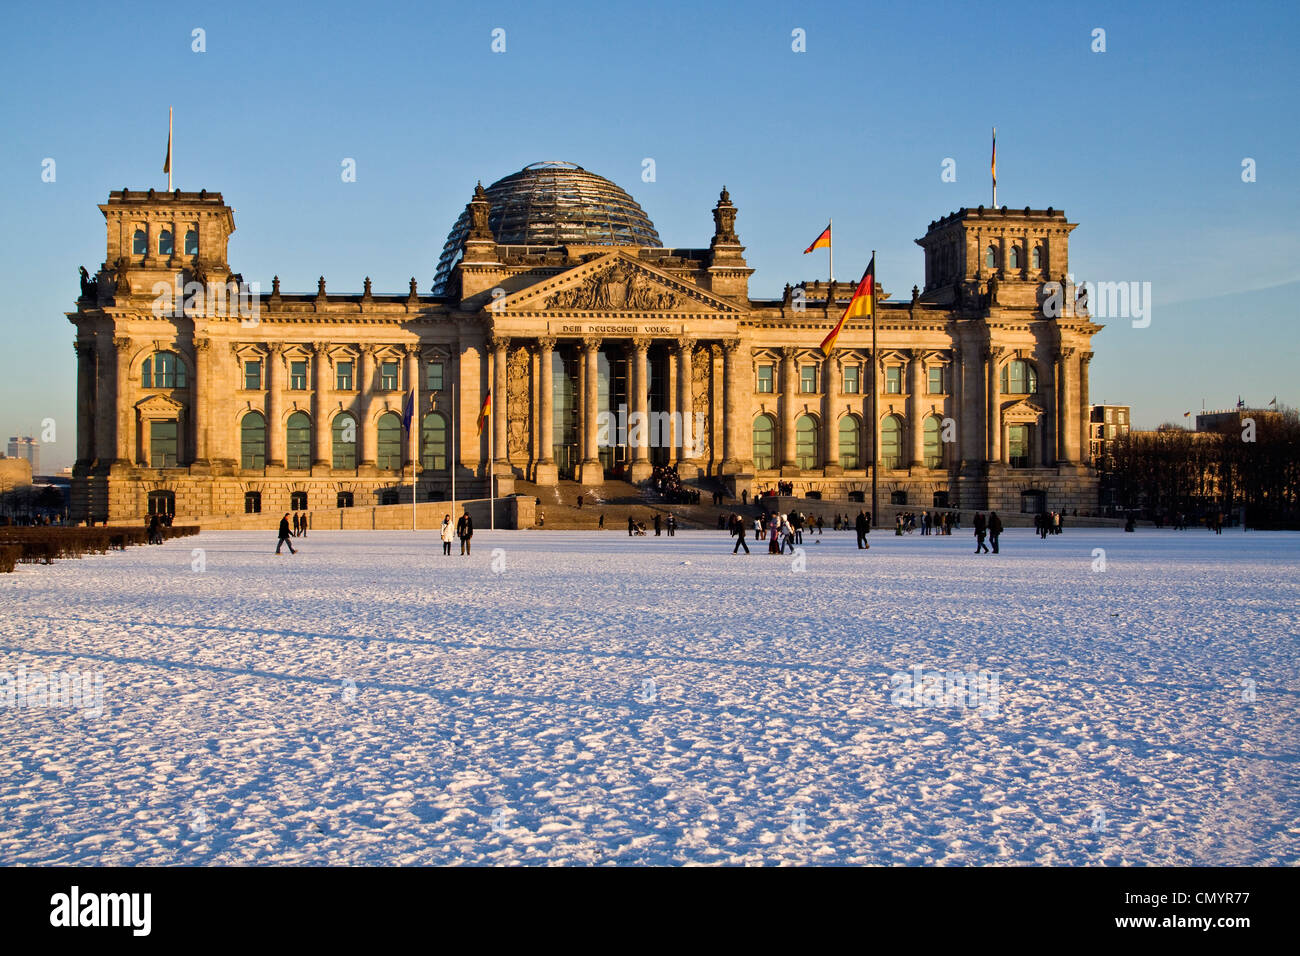 Reichstag building in winter with snow, outdoors, Berlin, Germany, Europe Stock Foto